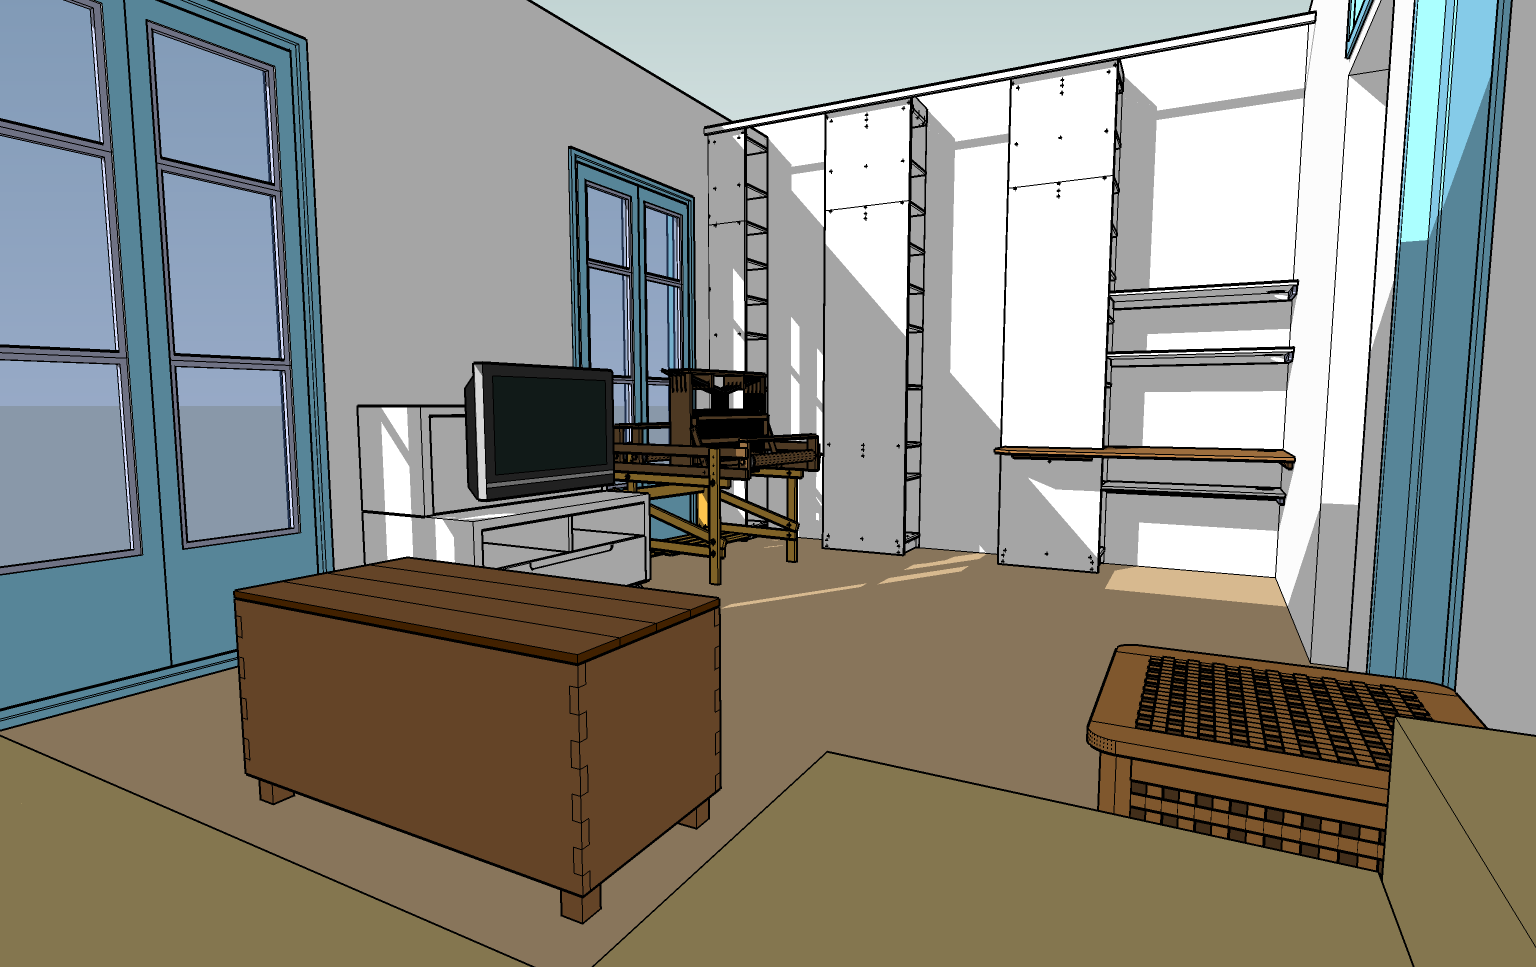 Using google sketchup to test room layouts catmacey 39 s stuff for Drawing room pictures